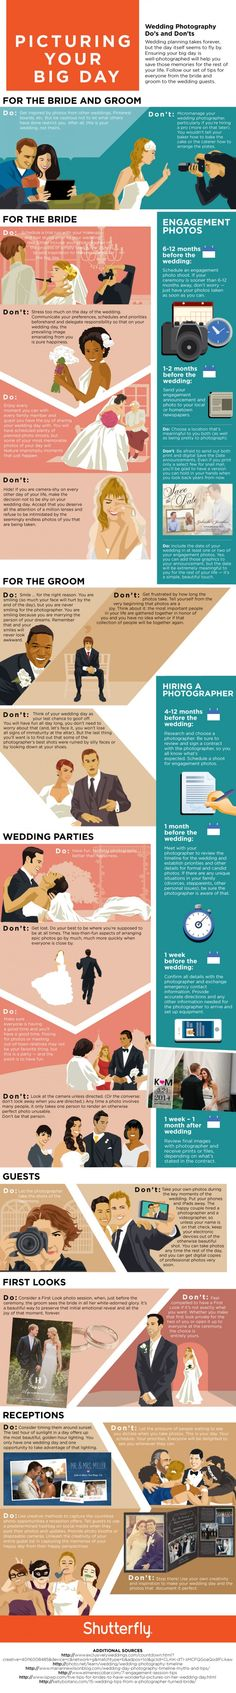 Finally, a useful info-graphic! 7 Months to the Big Day.... Preparation not even close to 30% :(